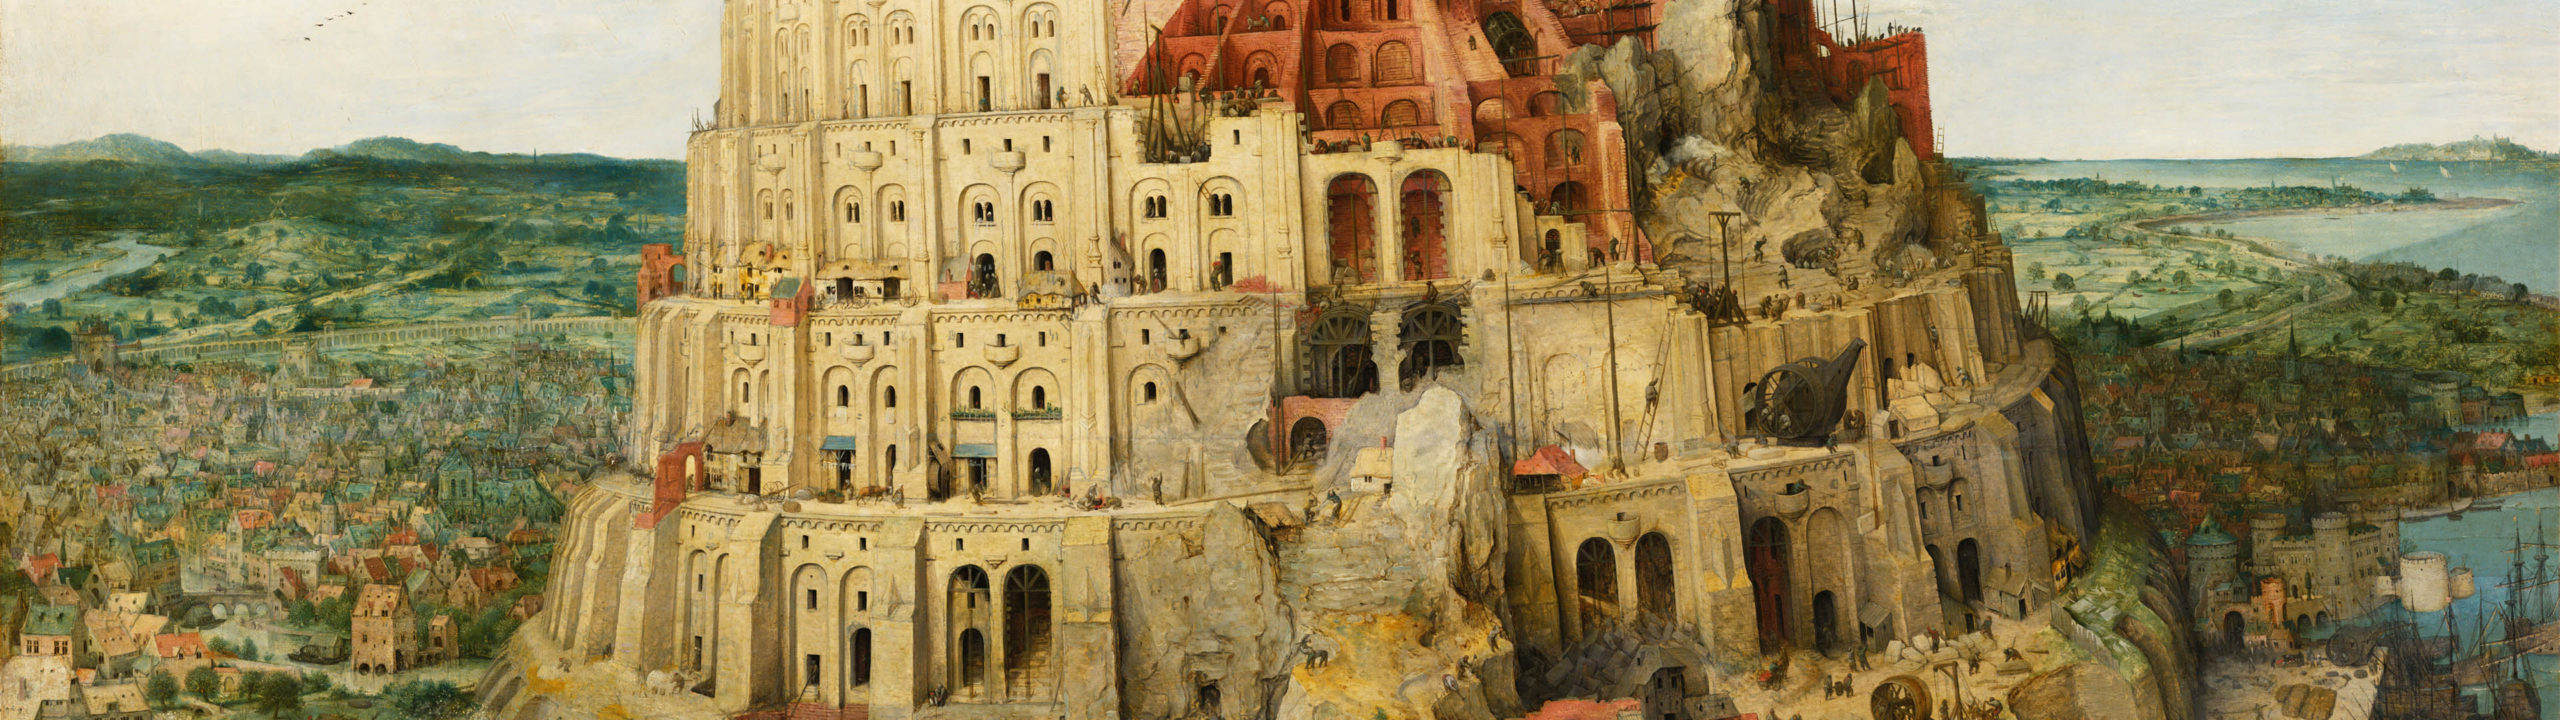 Pieter Bruegel - The Tower of Babel 3840x1080